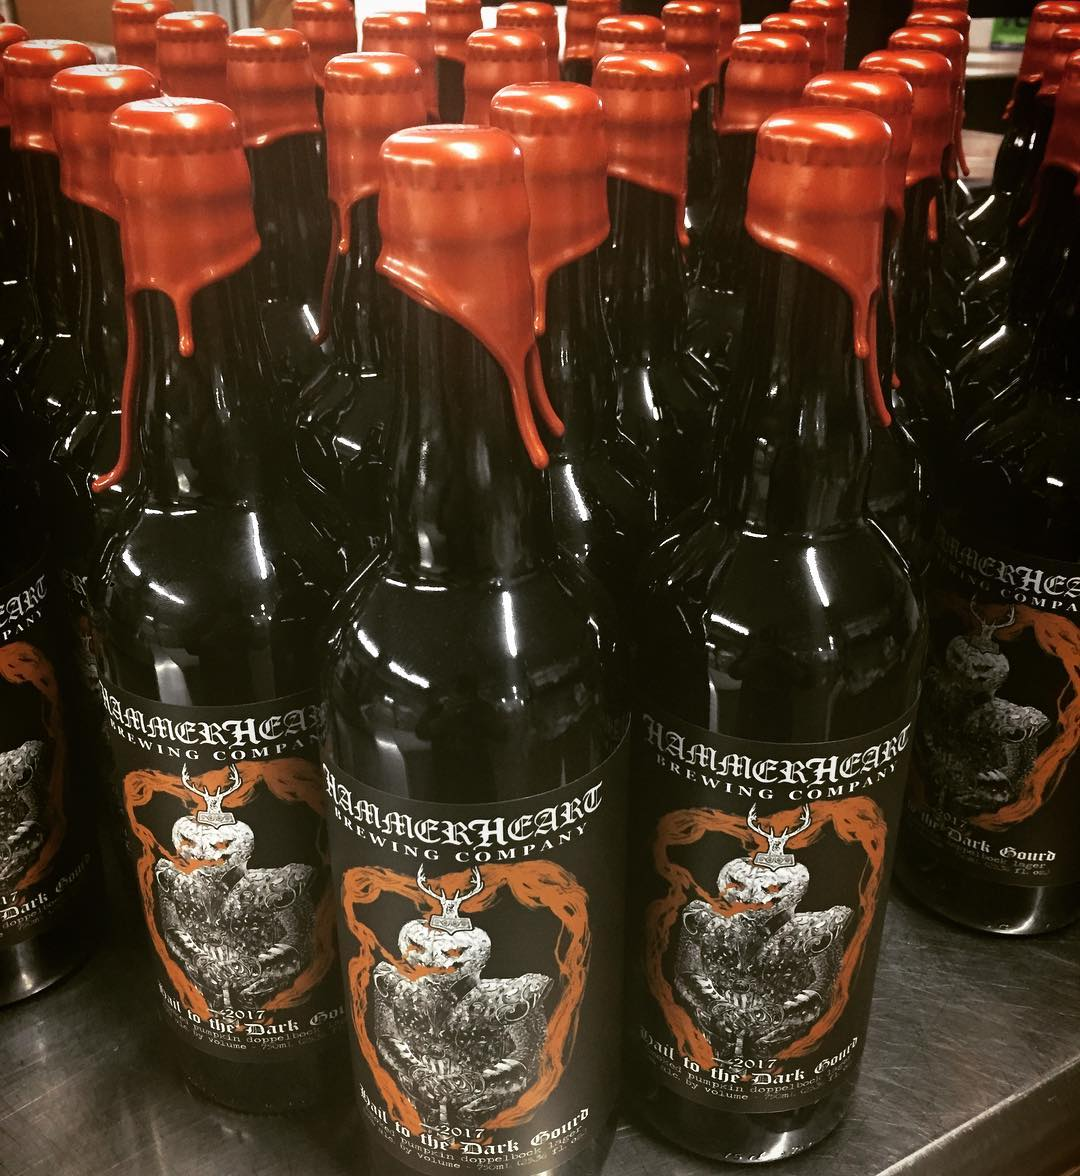 Hammerheart Hail to the Dark Gourd is available this weekend // Photo via HammerHeart's Instagram